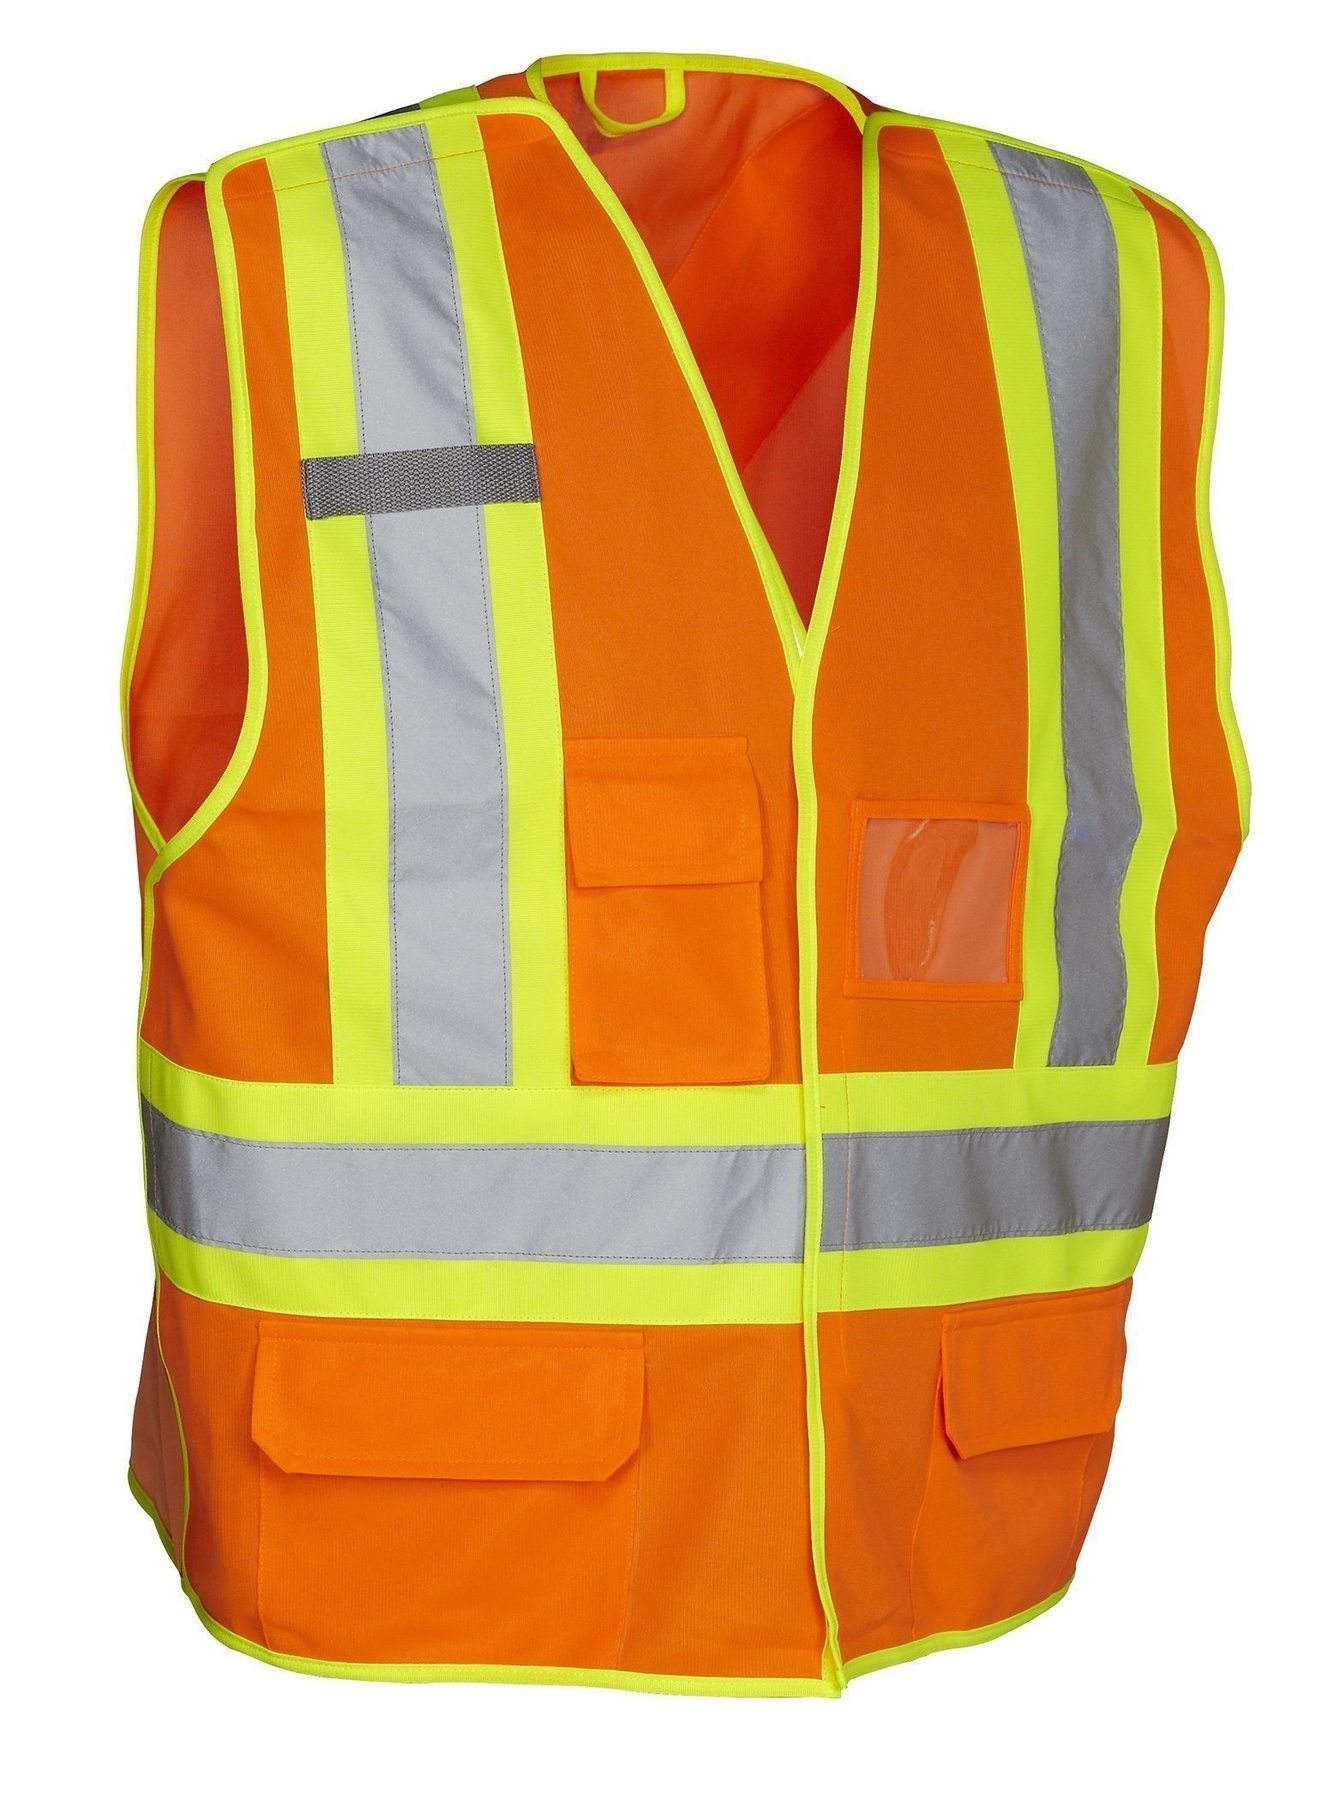 Forcefield Hi-Vis Tricot, Sized, 5-Point Tear-Away 022-TV1